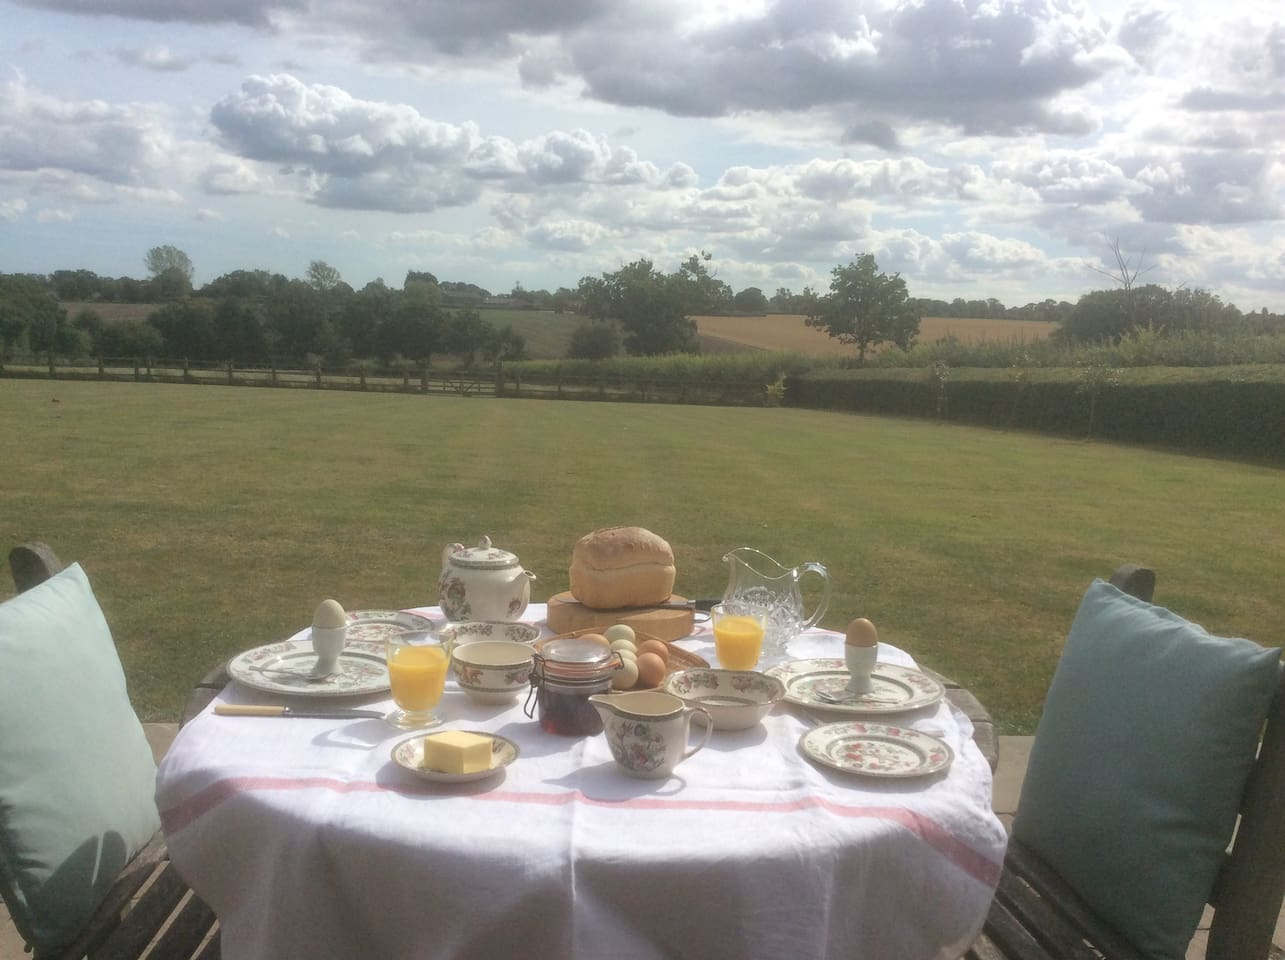 Sleep on crisp linen sheets in a soft king size bed. Awake to birdsong in the middle of the Suffolk countryside. Eat breakfast on your terrace with far reaching views...relax